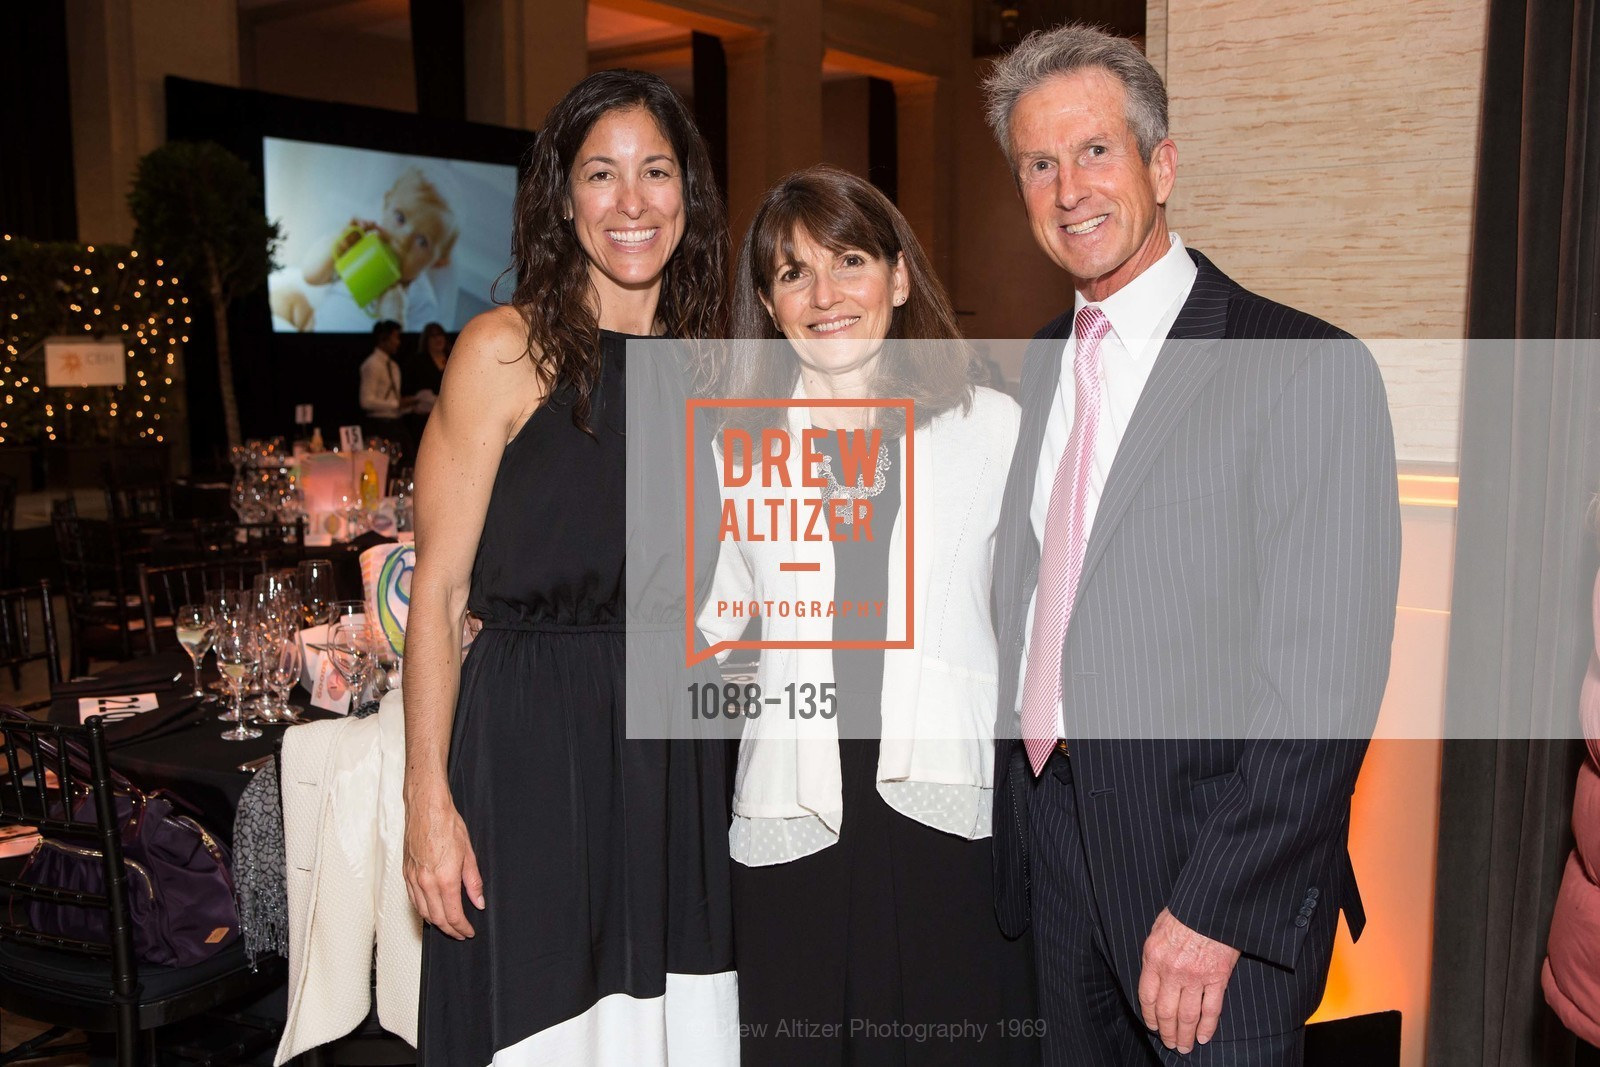 Jennifer Sawle, Diane Stefani, Tony Stefani, Center for Environmental Health  2015 Gala, Bently Reserve, May 27th, 2015,Drew Altizer, Drew Altizer Photography, full-service agency, private events, San Francisco photographer, photographer california